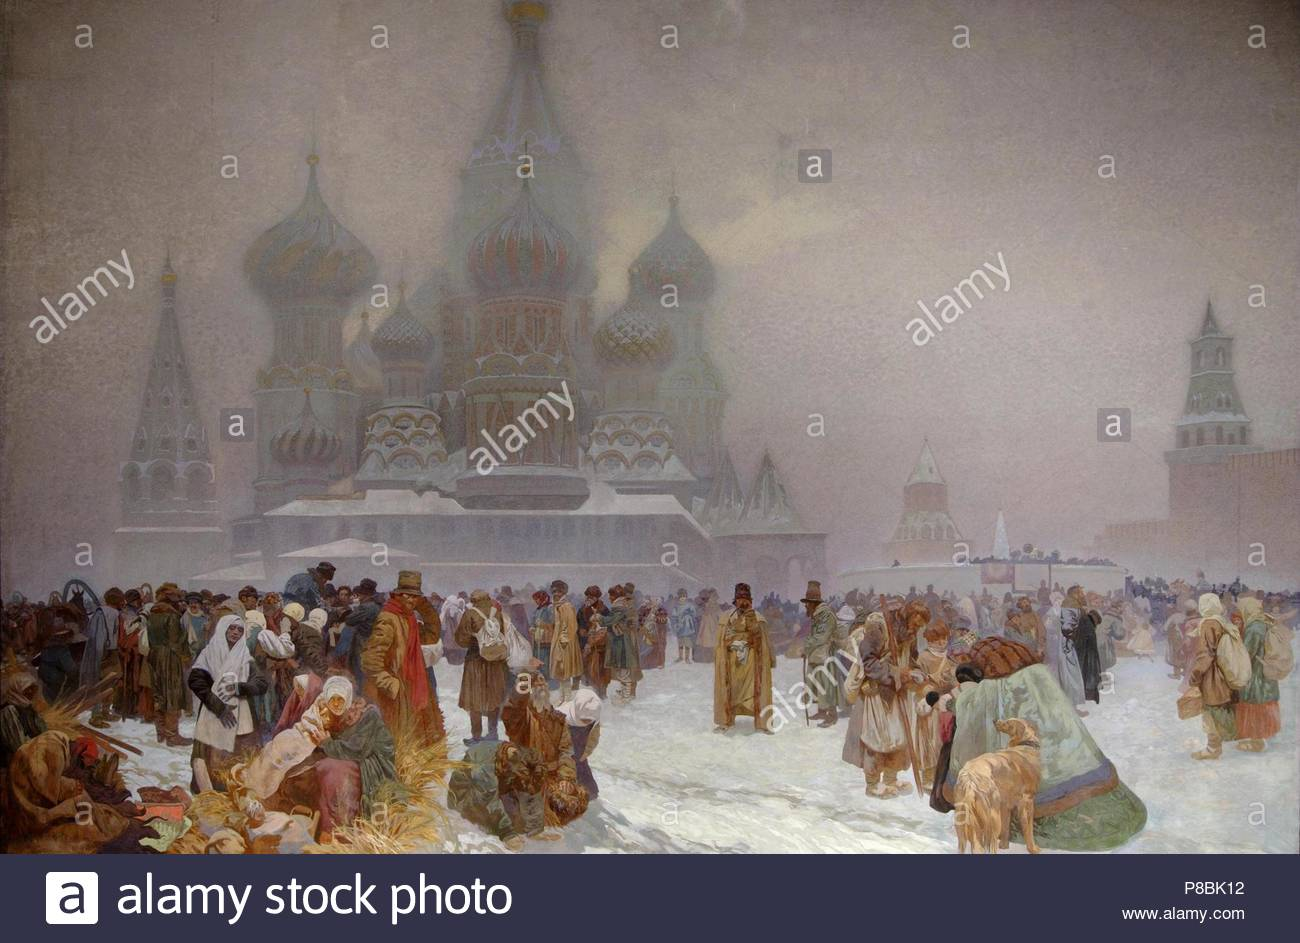 The Abolition of Serfdom in Russia. Museum: City Gallery Prague. - Stock Image